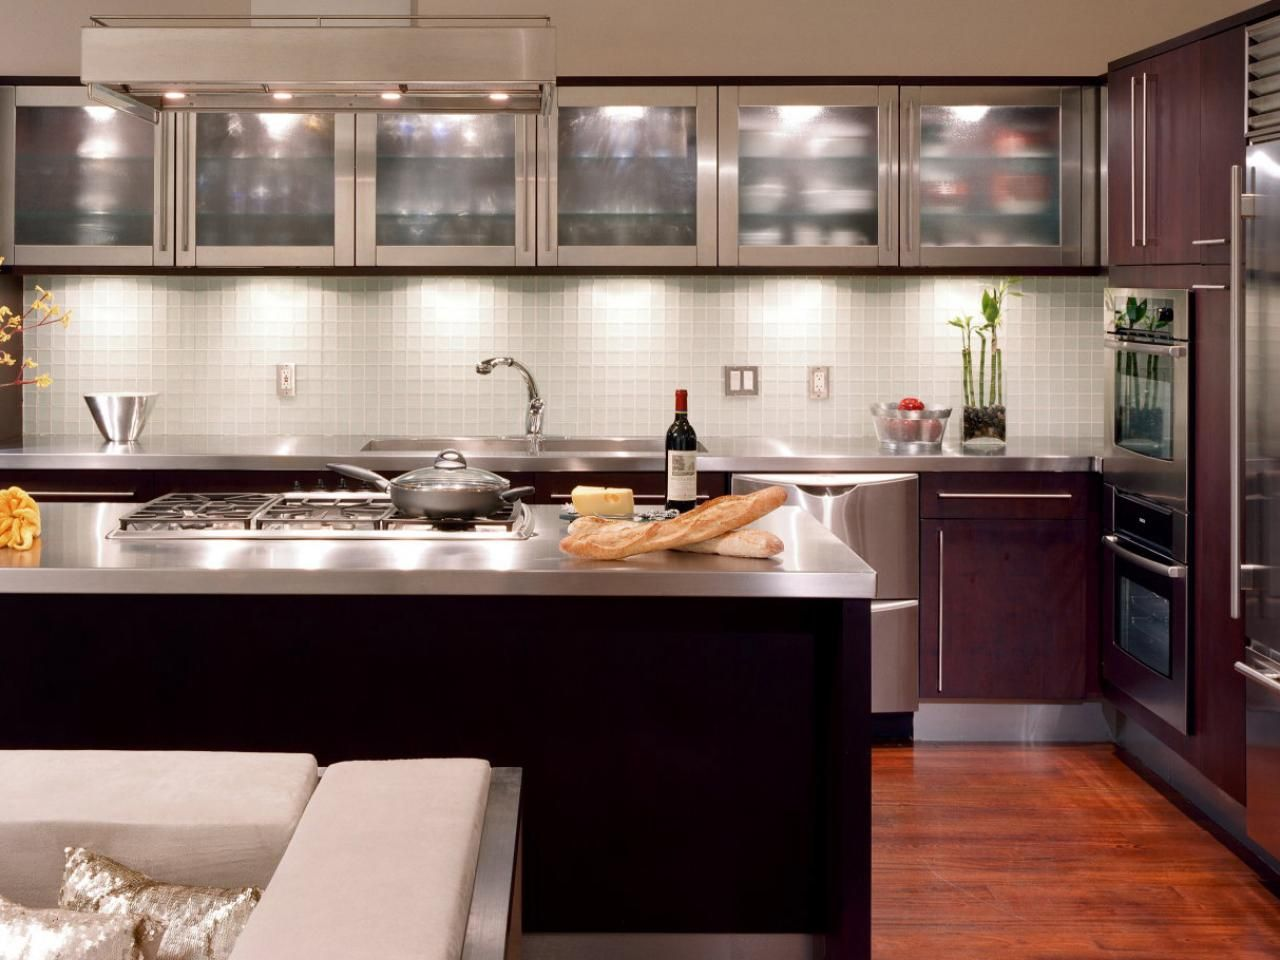 Pictures Of Kitchen Cabinets Beautiful Storage Display Options Kitchen Designs Best Kitchen Cabinets Glass Kitchen Cabinets Modern White Kitchen Cabinets